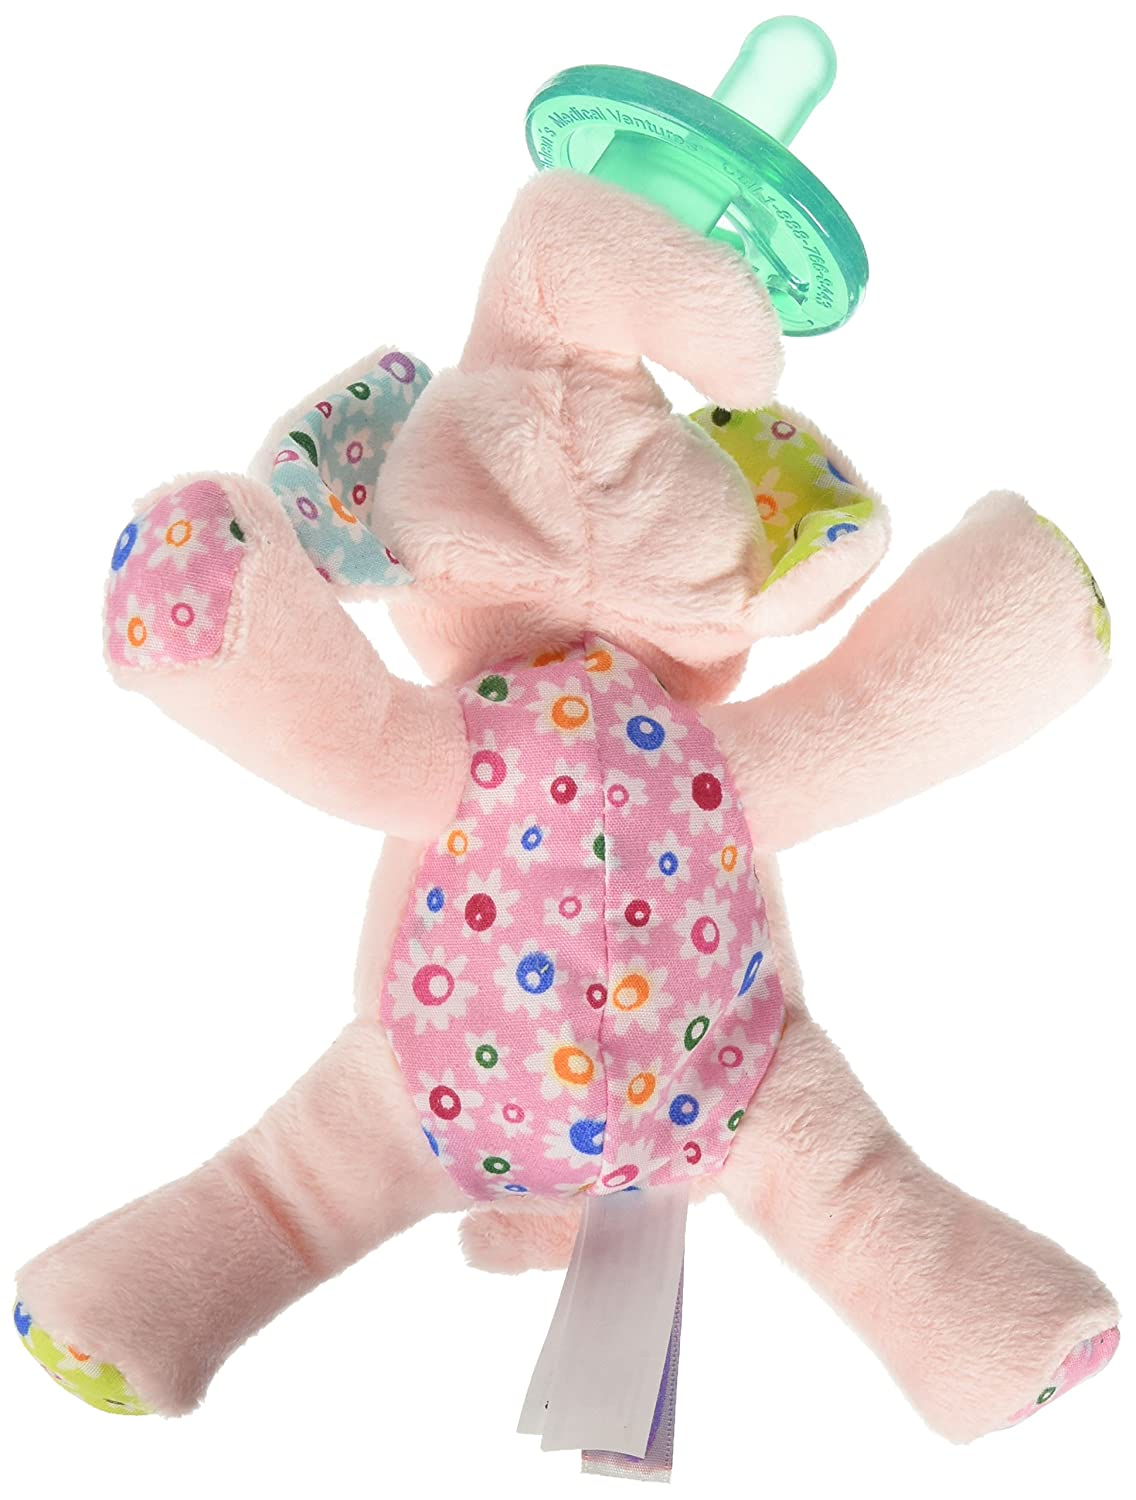 fc63580363 Amazon.com : Mary Meyer WubbaNub Soft Toy and Infant Pacifier, Ella Bella  Elephant : Baby Pacifiers : Baby